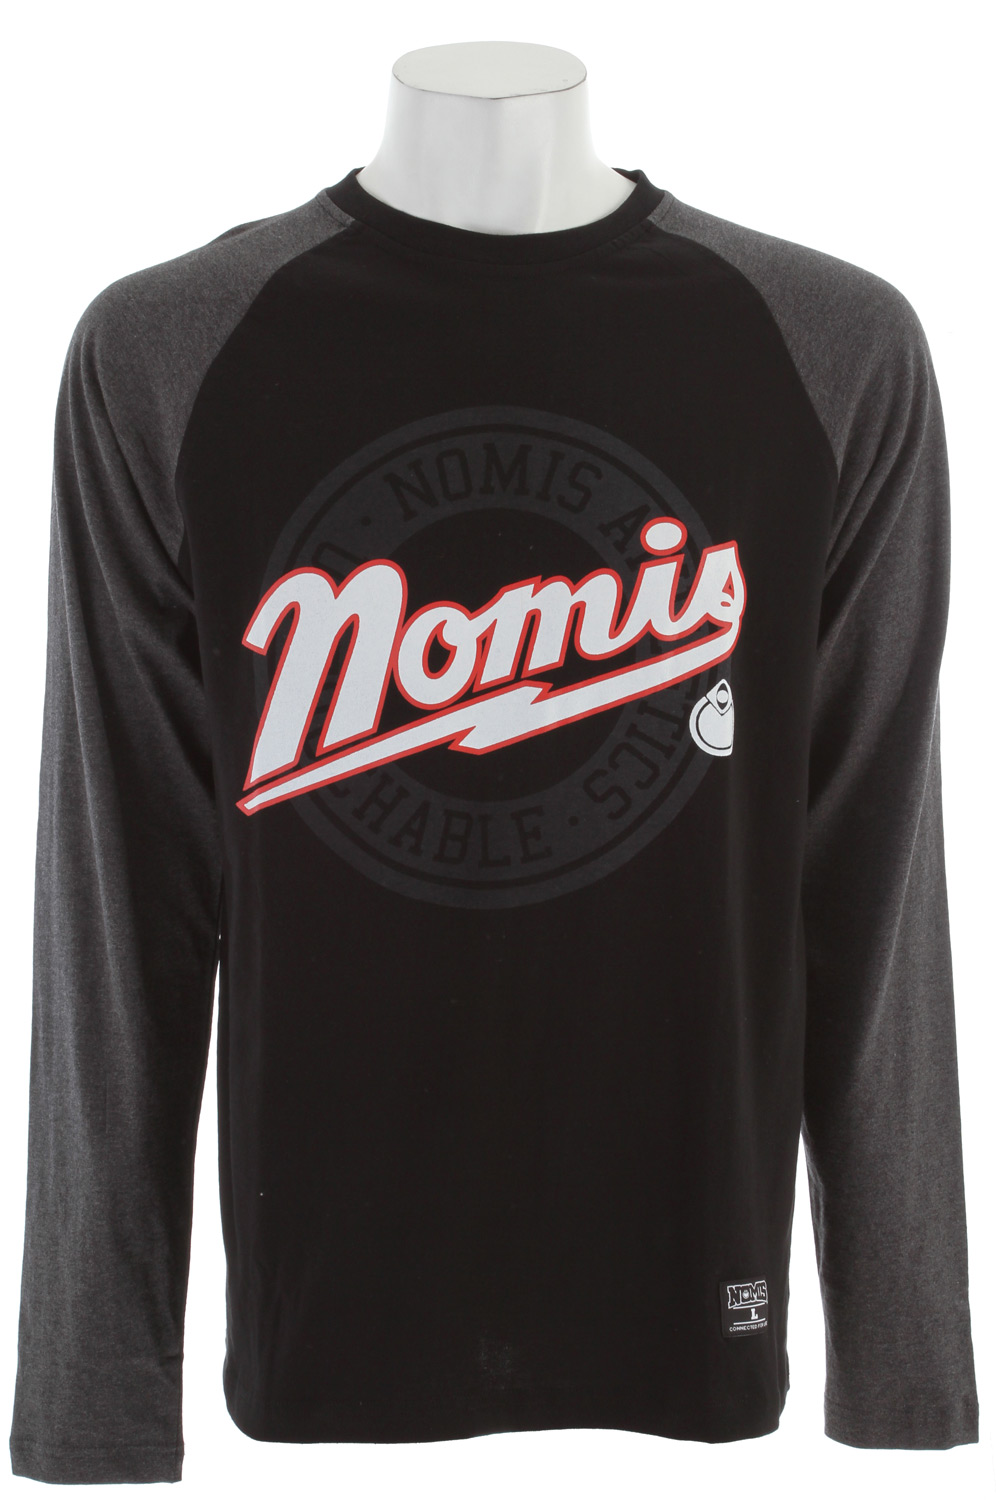 Sports Key Features of The Nomis Baseball L/S T-Shirt: Regular Fit Crew Neck Long Sleeve 95% Cotton 5% Spandex Tall sizing - $34.95